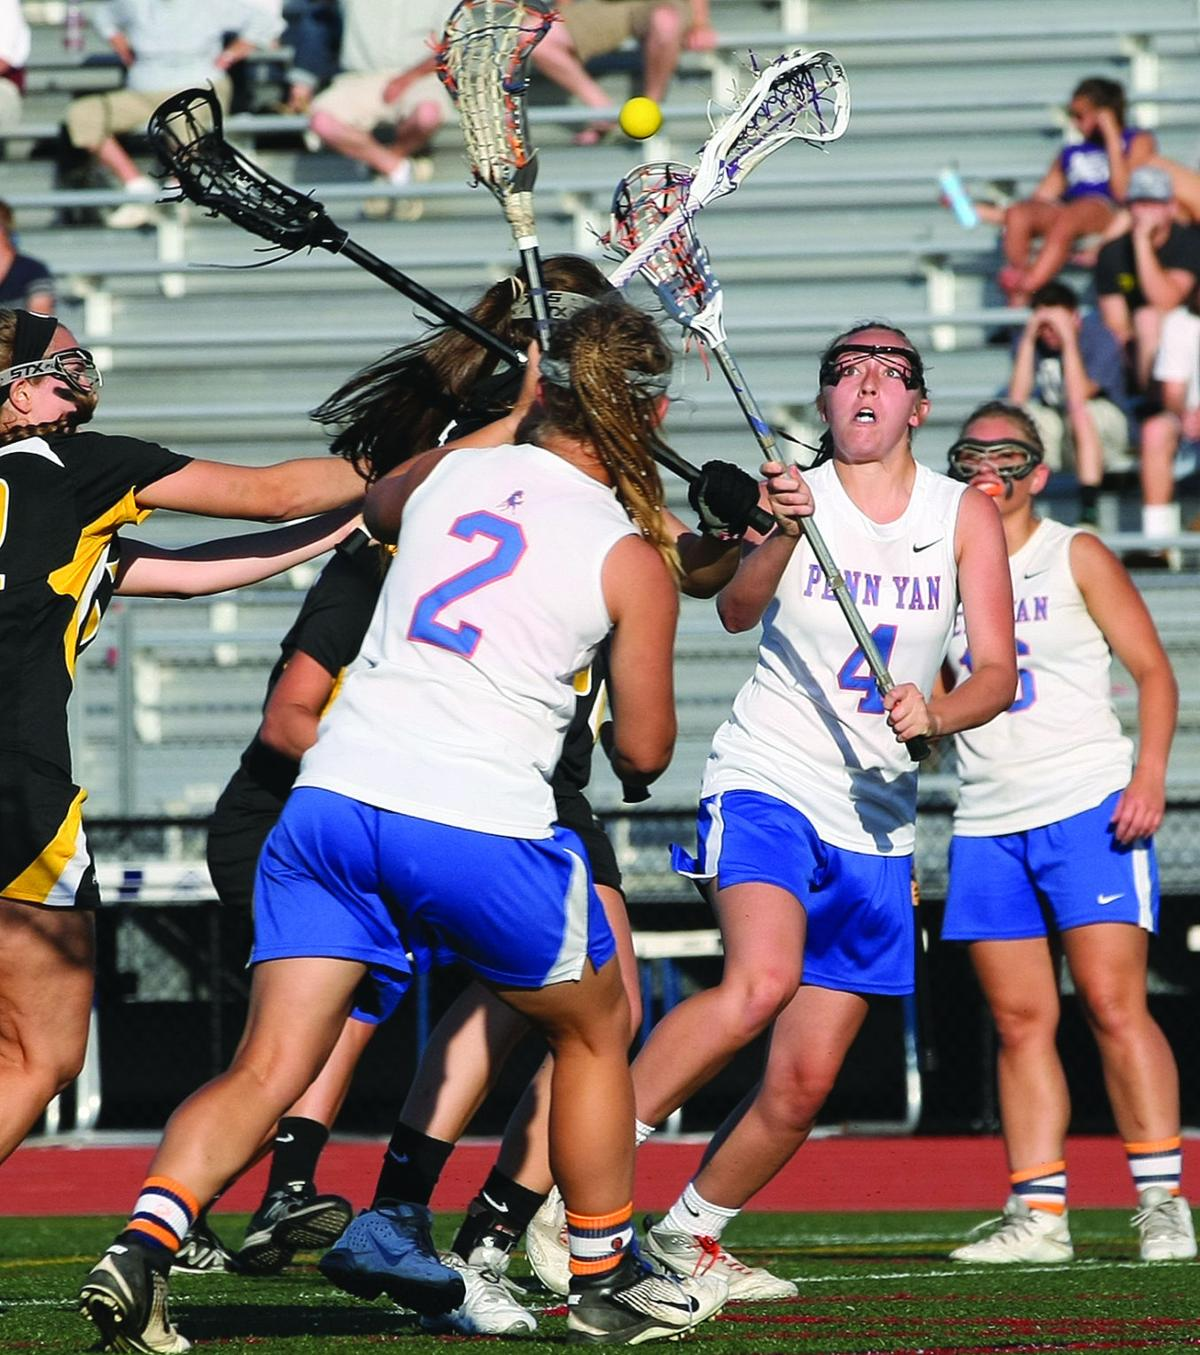 penn yan girls Palmyra-macedon wins second straight class d girls lacrosse title over penn yan emma arnold had nine points on six goals and three assist to lead the red.